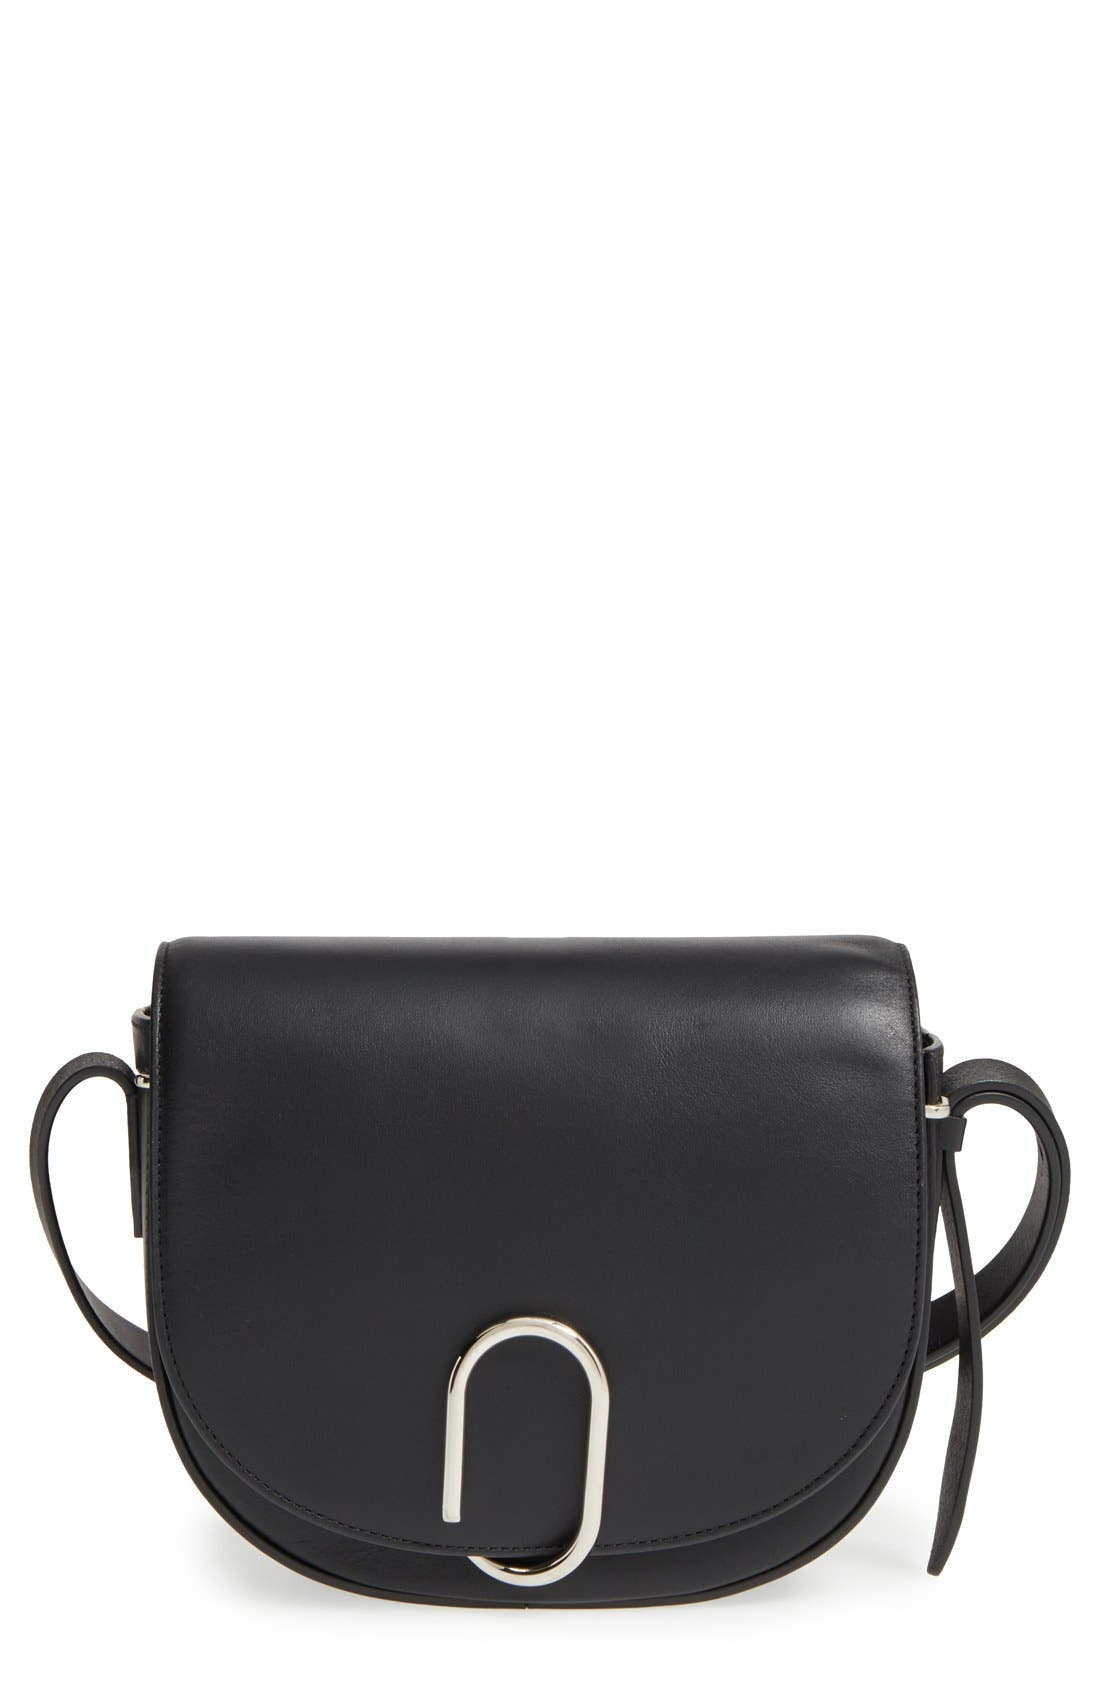 3.1 PHILLIP LIM 'Alix' Leather Saddle Bag